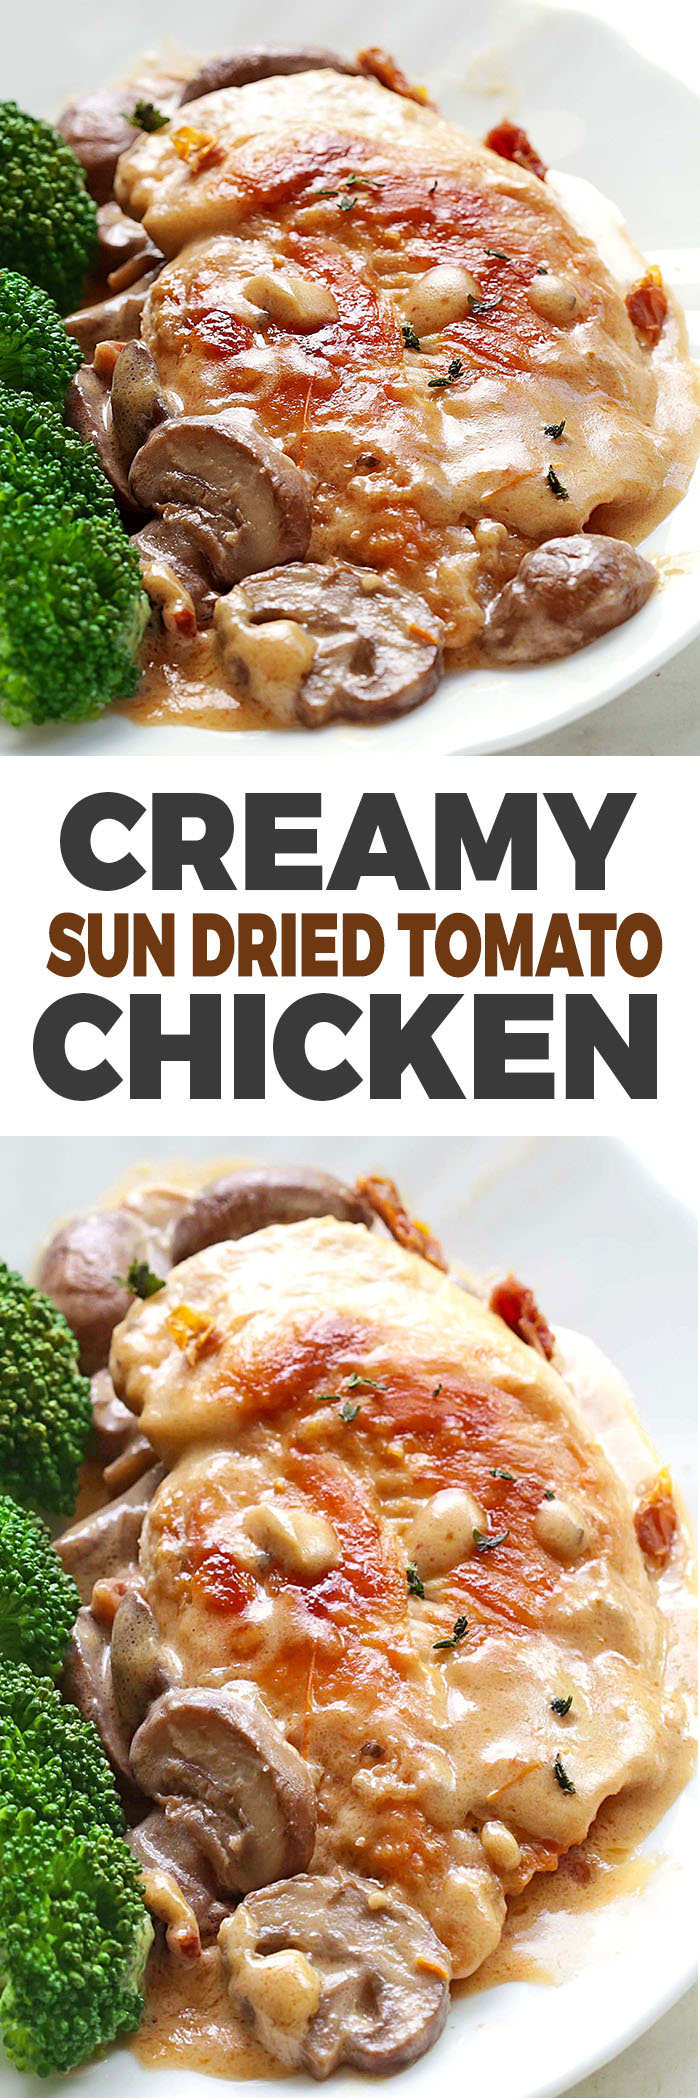 All you need is one skillet, a few fresh ingredients and soon enough you'll have restaurant style Creamy Sun Dried Tomato Chicken for dinner.